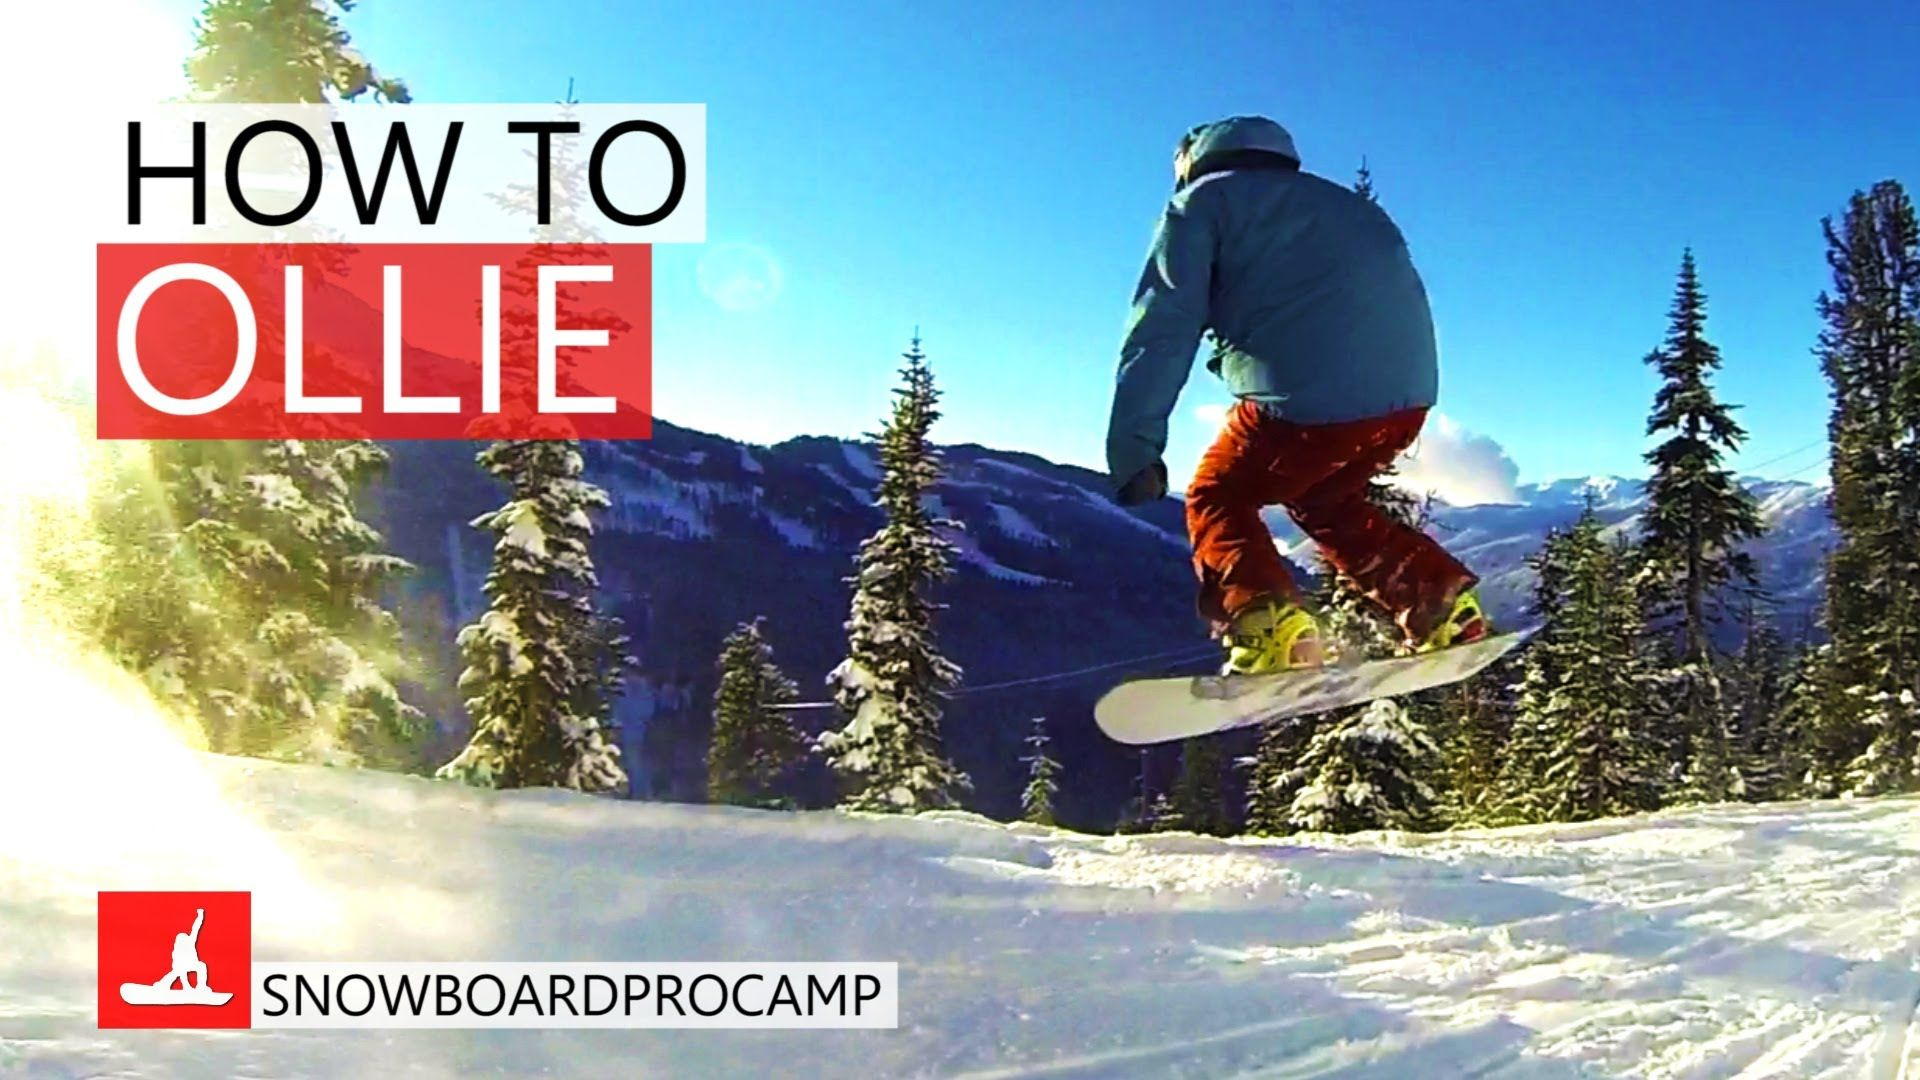 Learn How To Ollie On A Snowboard And Get Tips To Make Ollies Super Easy To